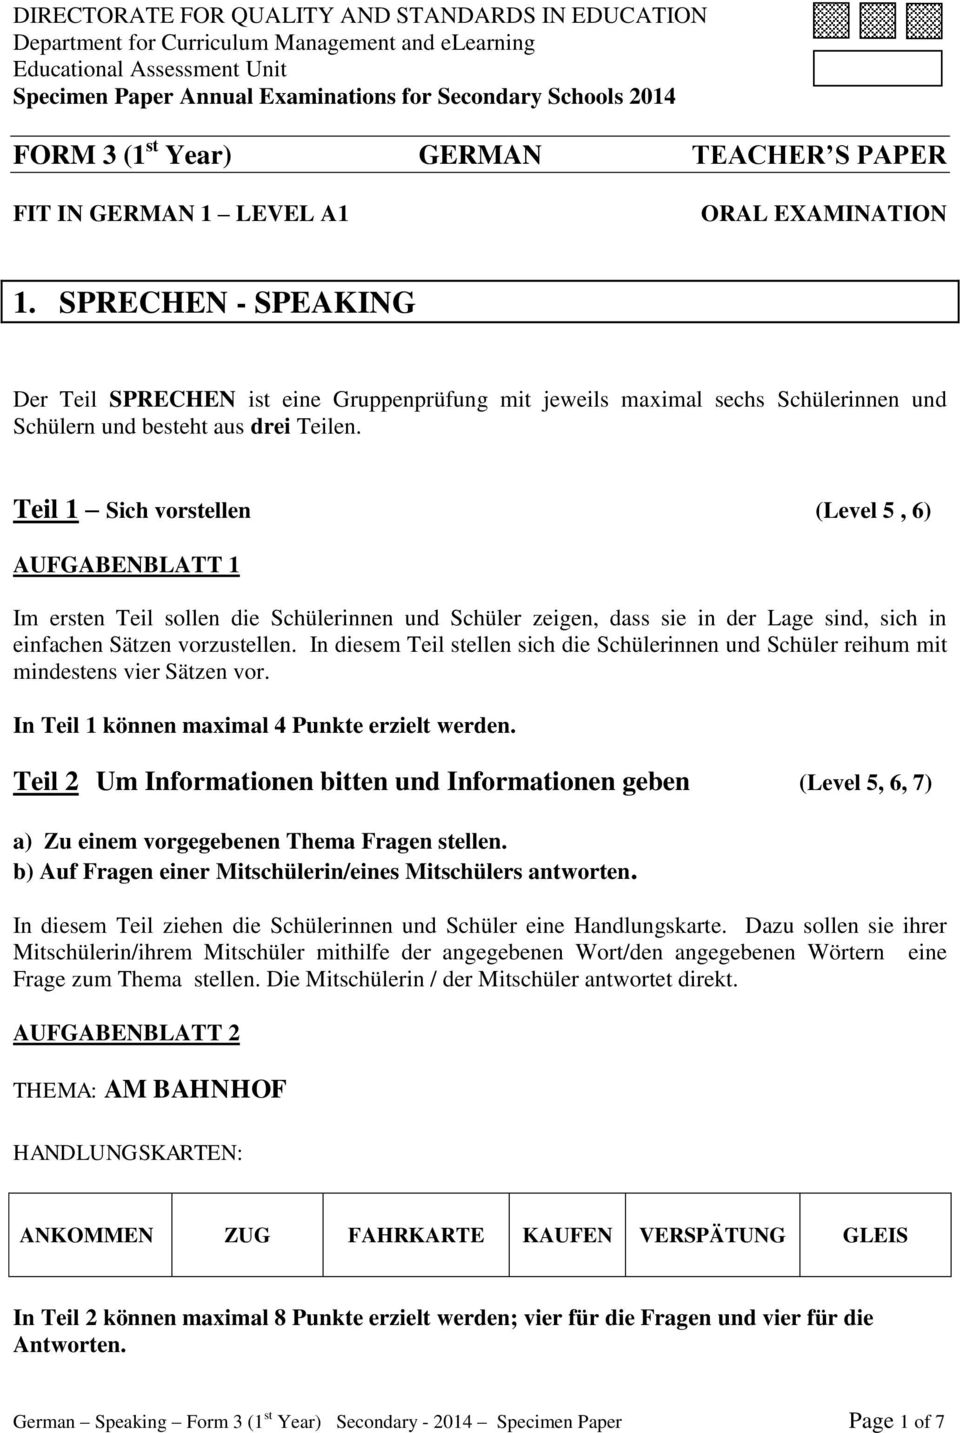 FORM 3 (1 st Year) GERMAN Specification Paper - PDF